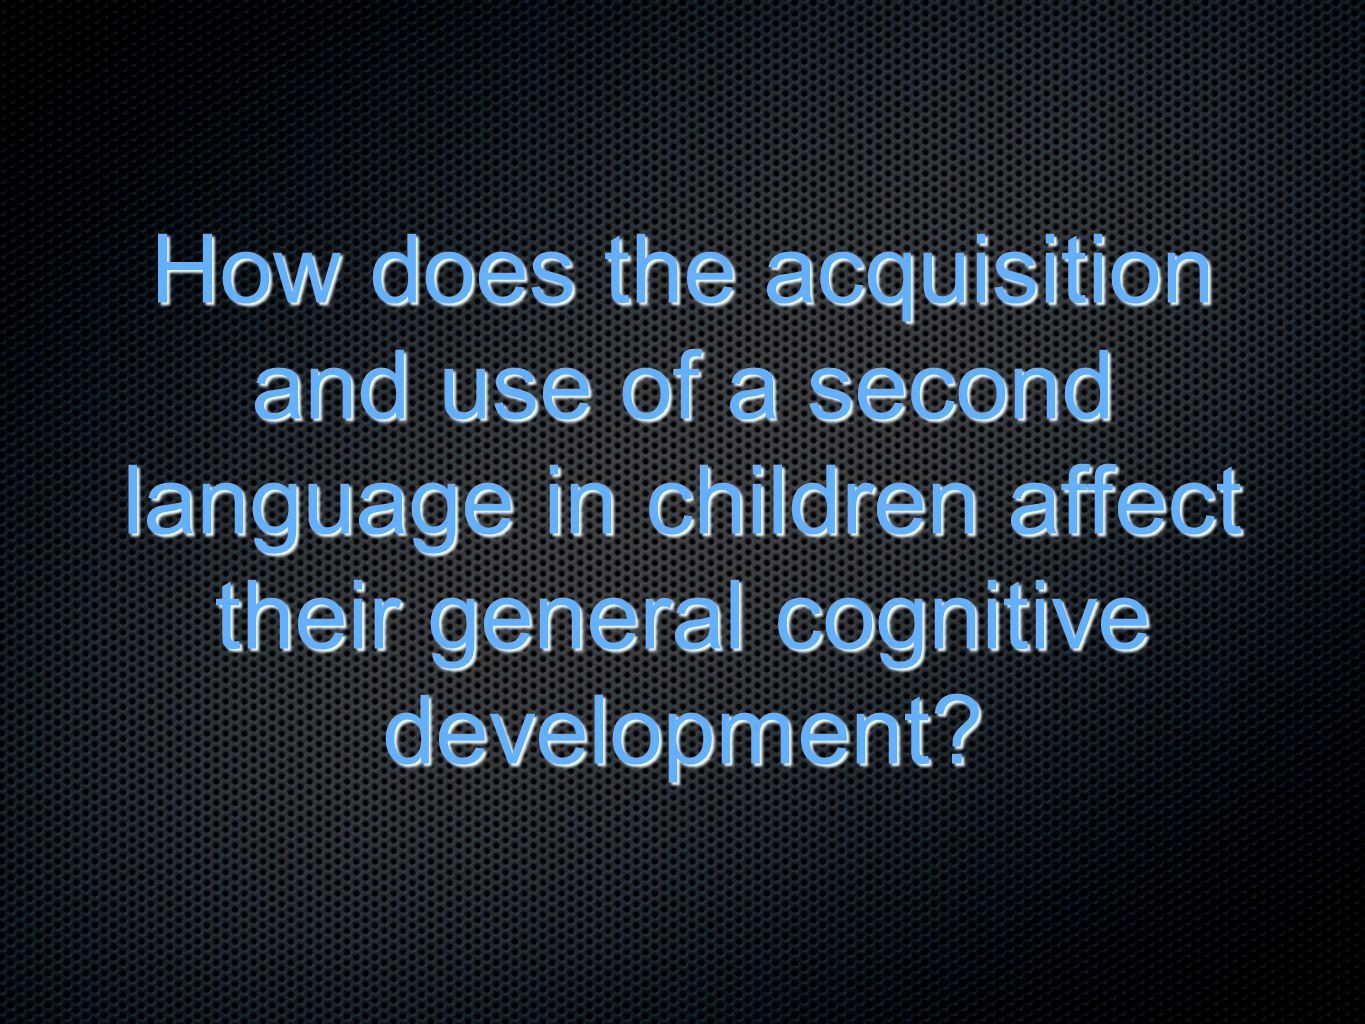 How does the acquisition and use of a second language in children affect their general cognitive development